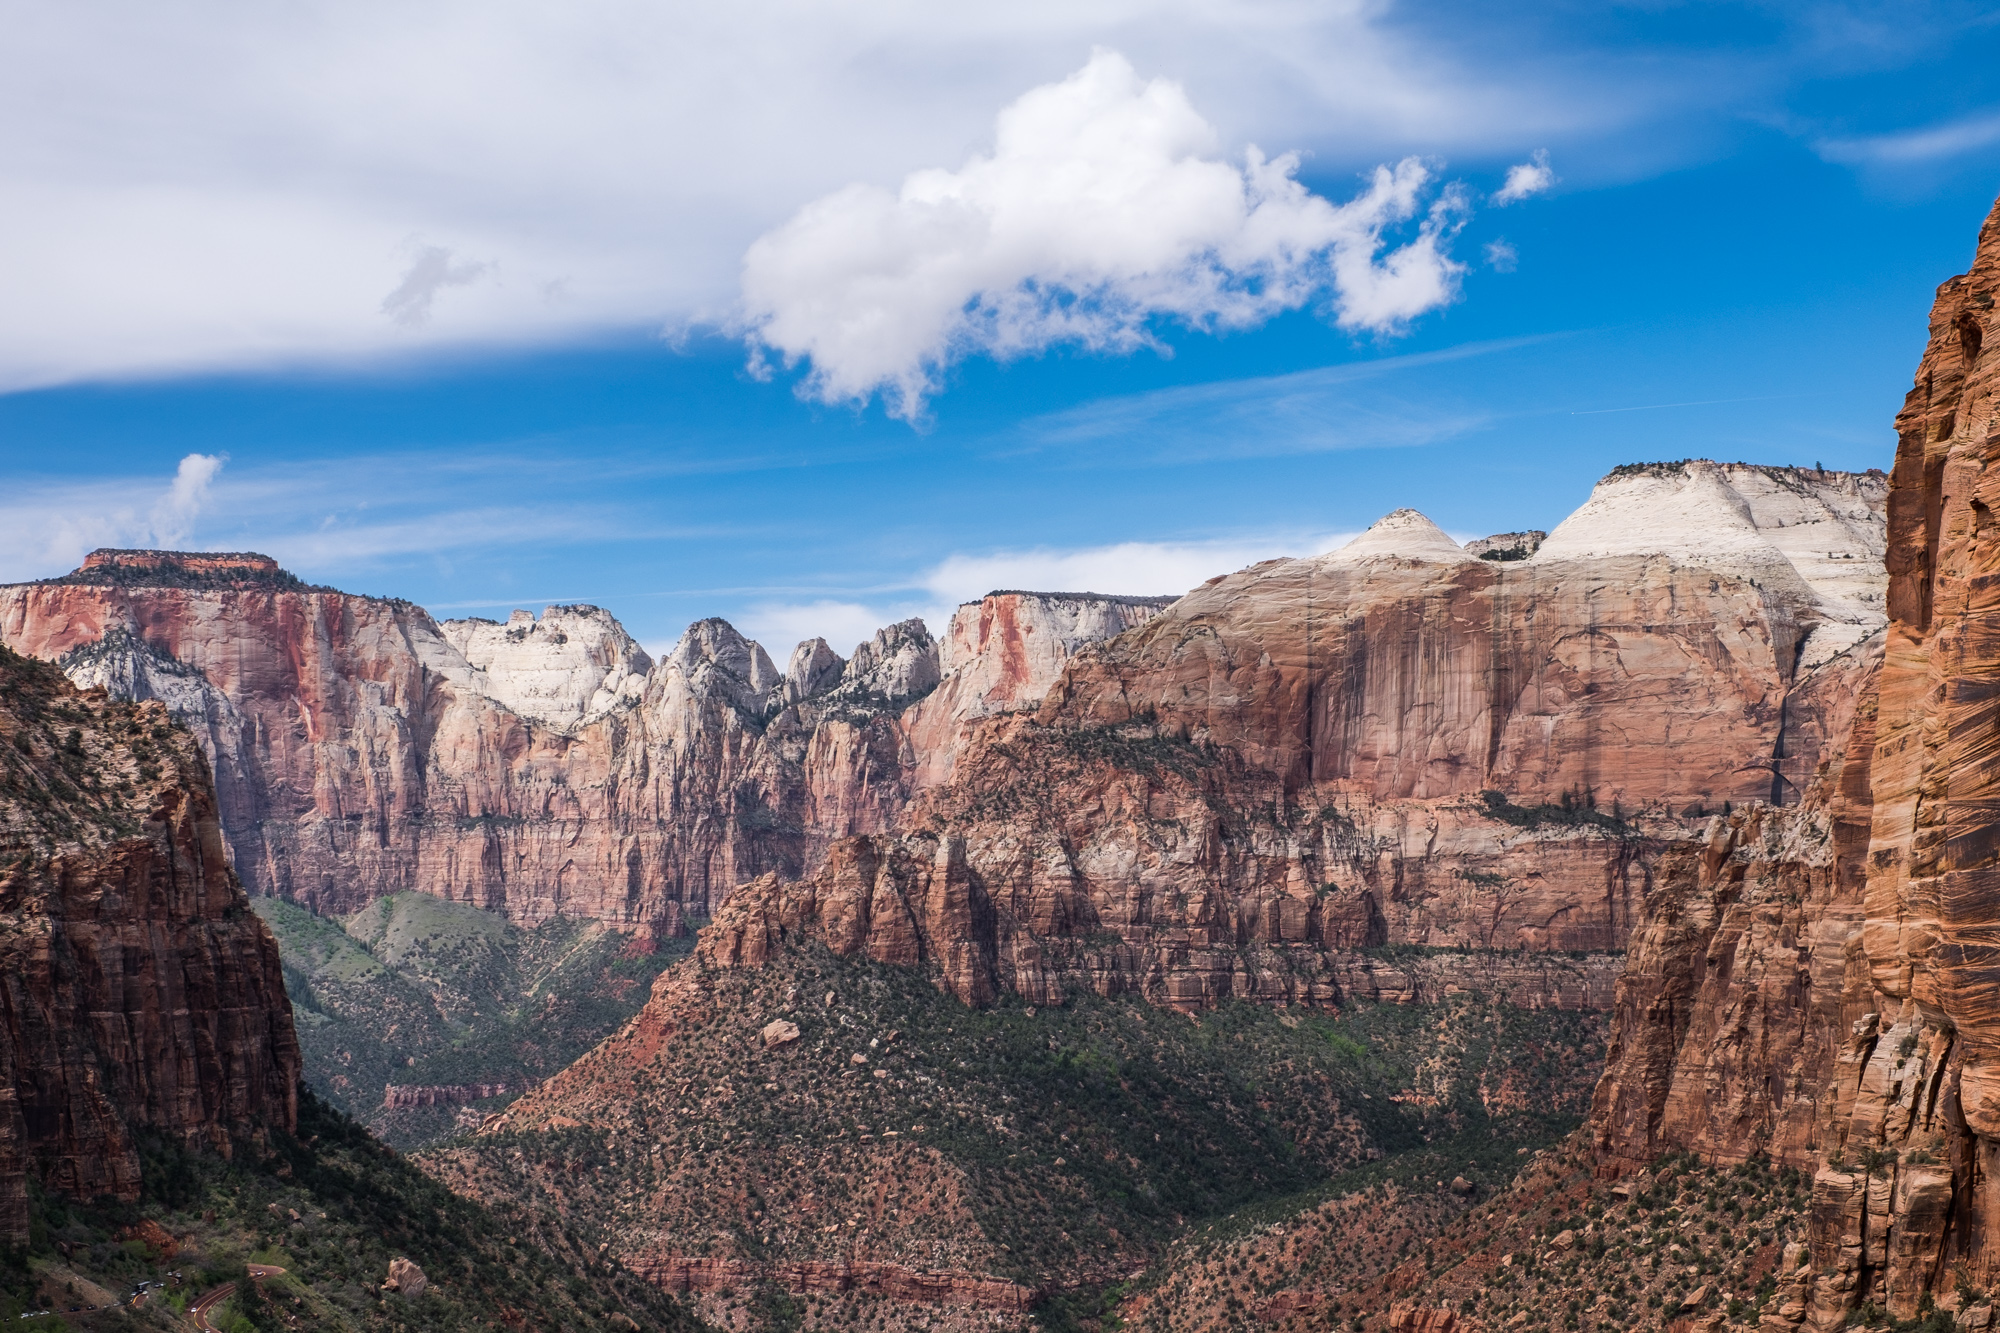 Worth the hike, the light exposure, and braving the tiny parking lot at the trailhead ... the Canyon Overlook undeniably has some of the best views in Zion National Park!